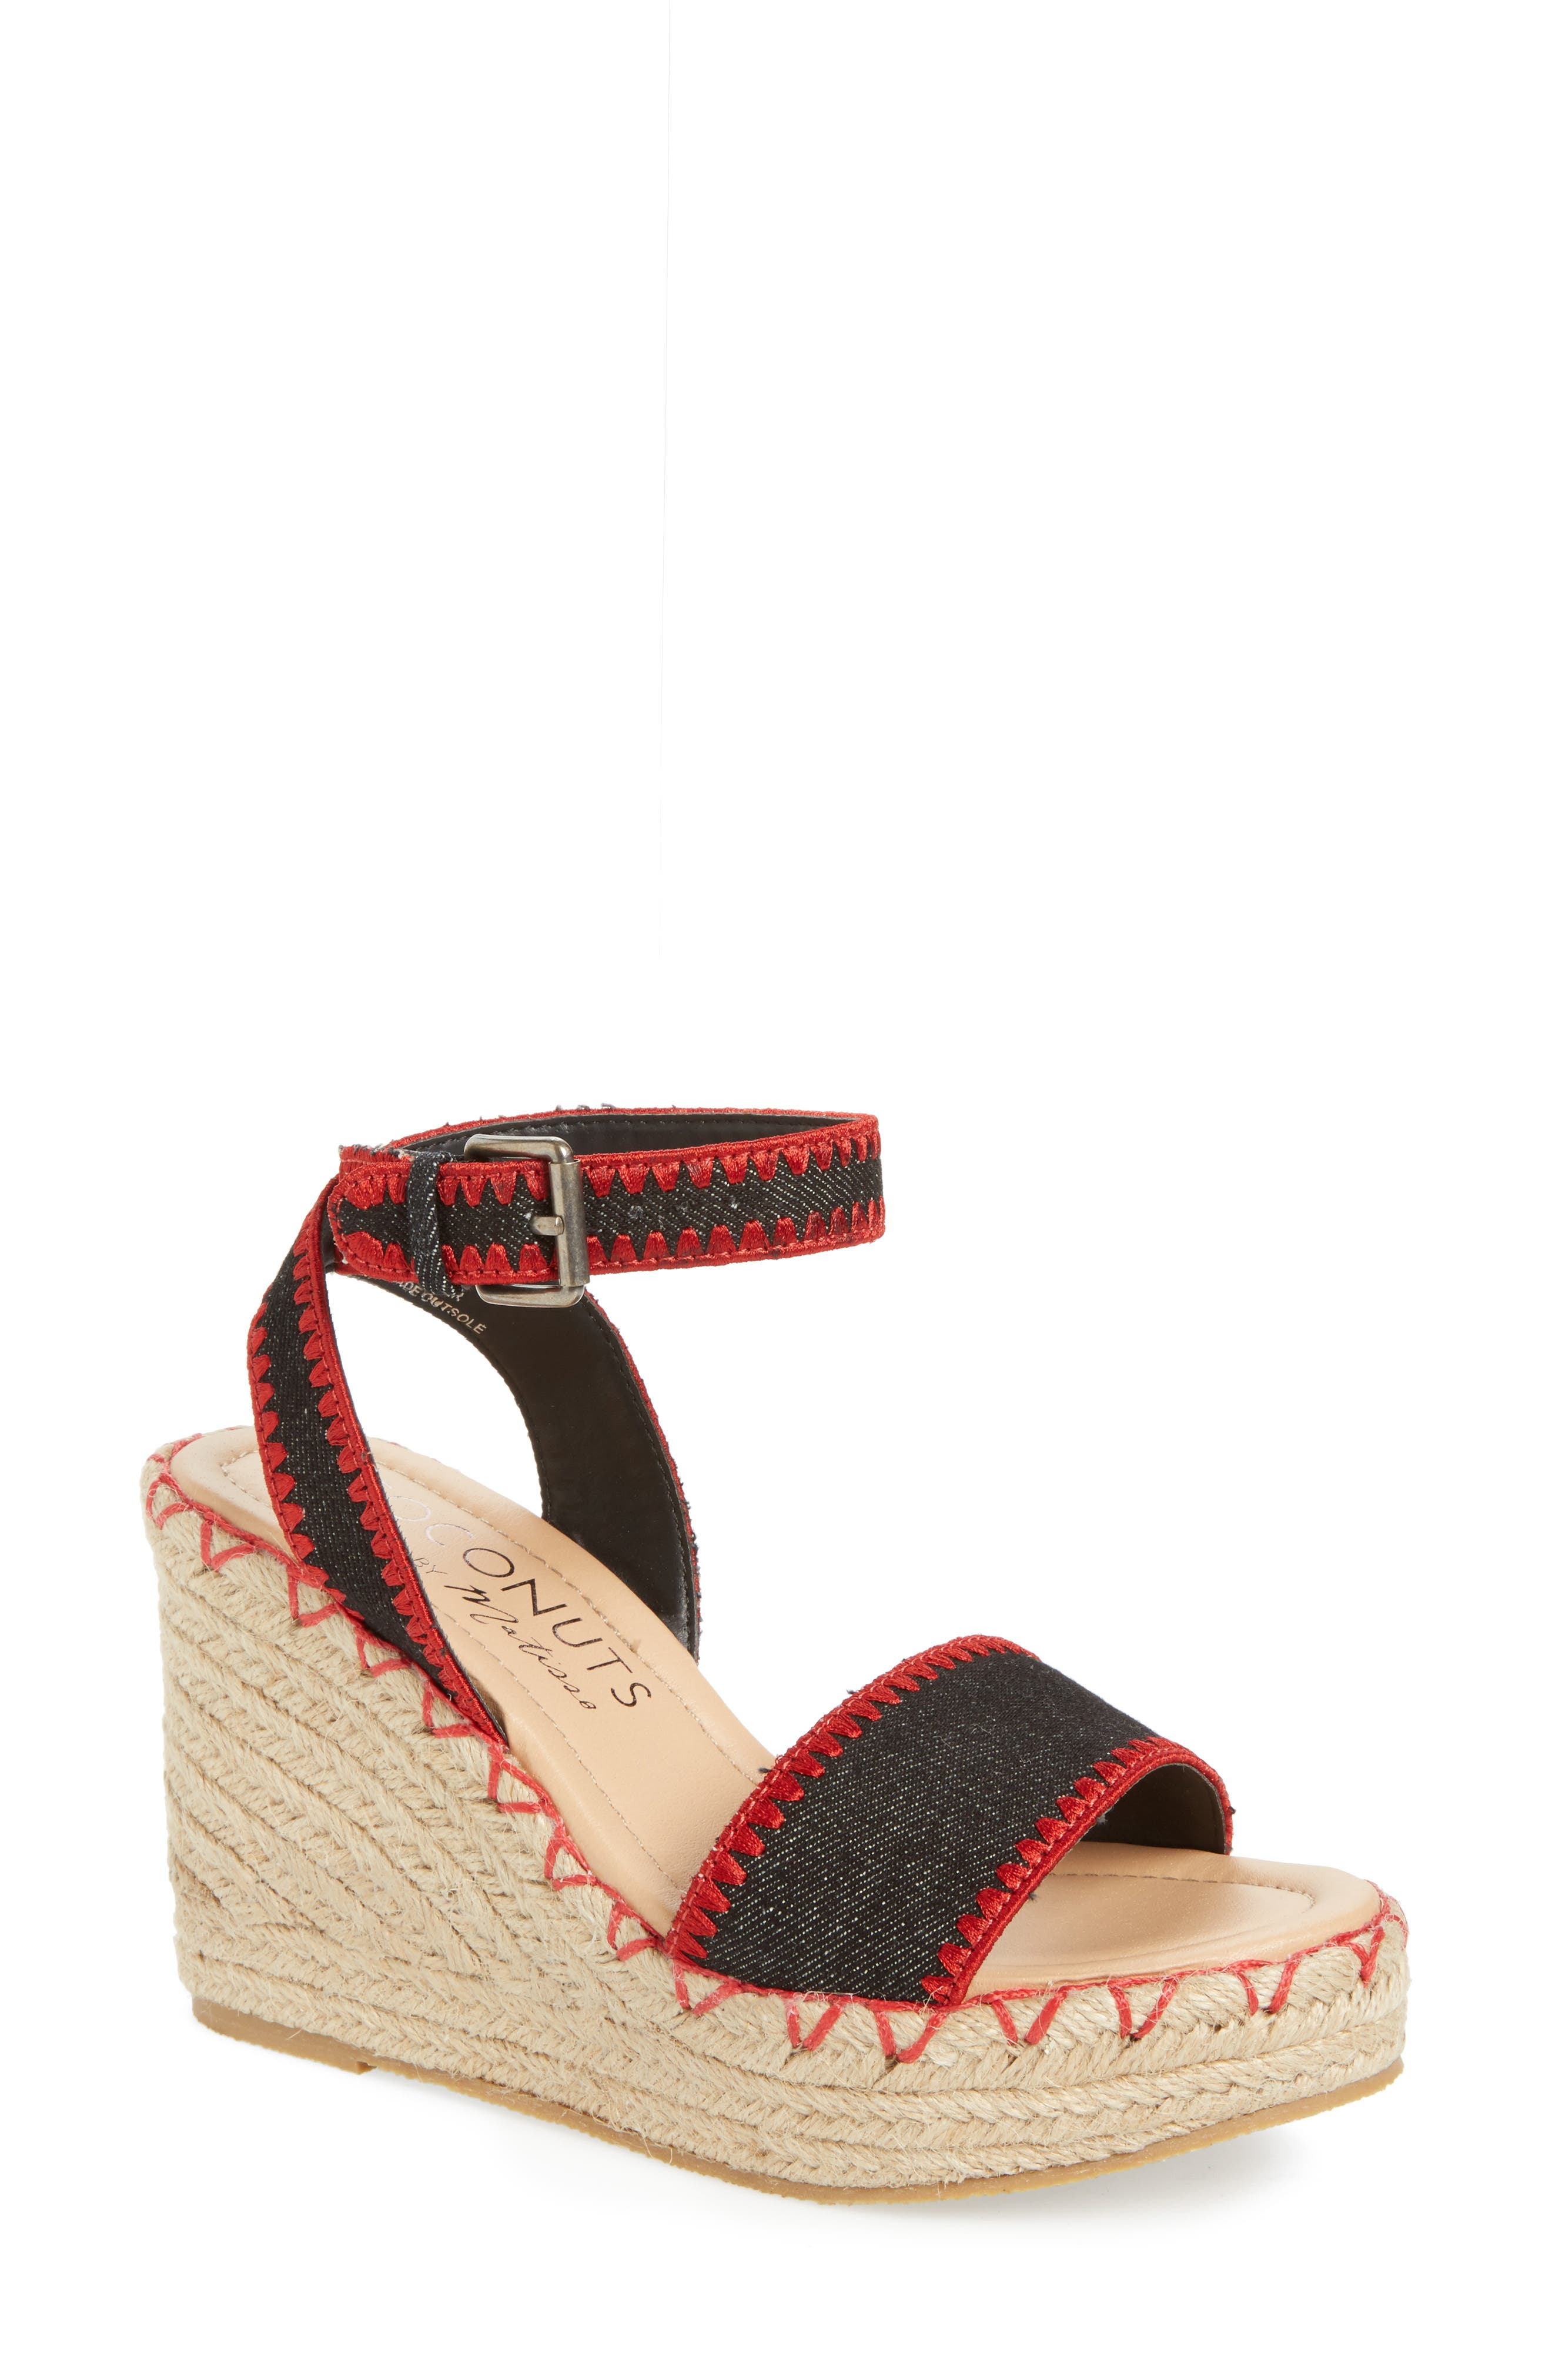 Coconuts by Matisse Frenchie Wedge Sandal,                         Main,                         color, 002